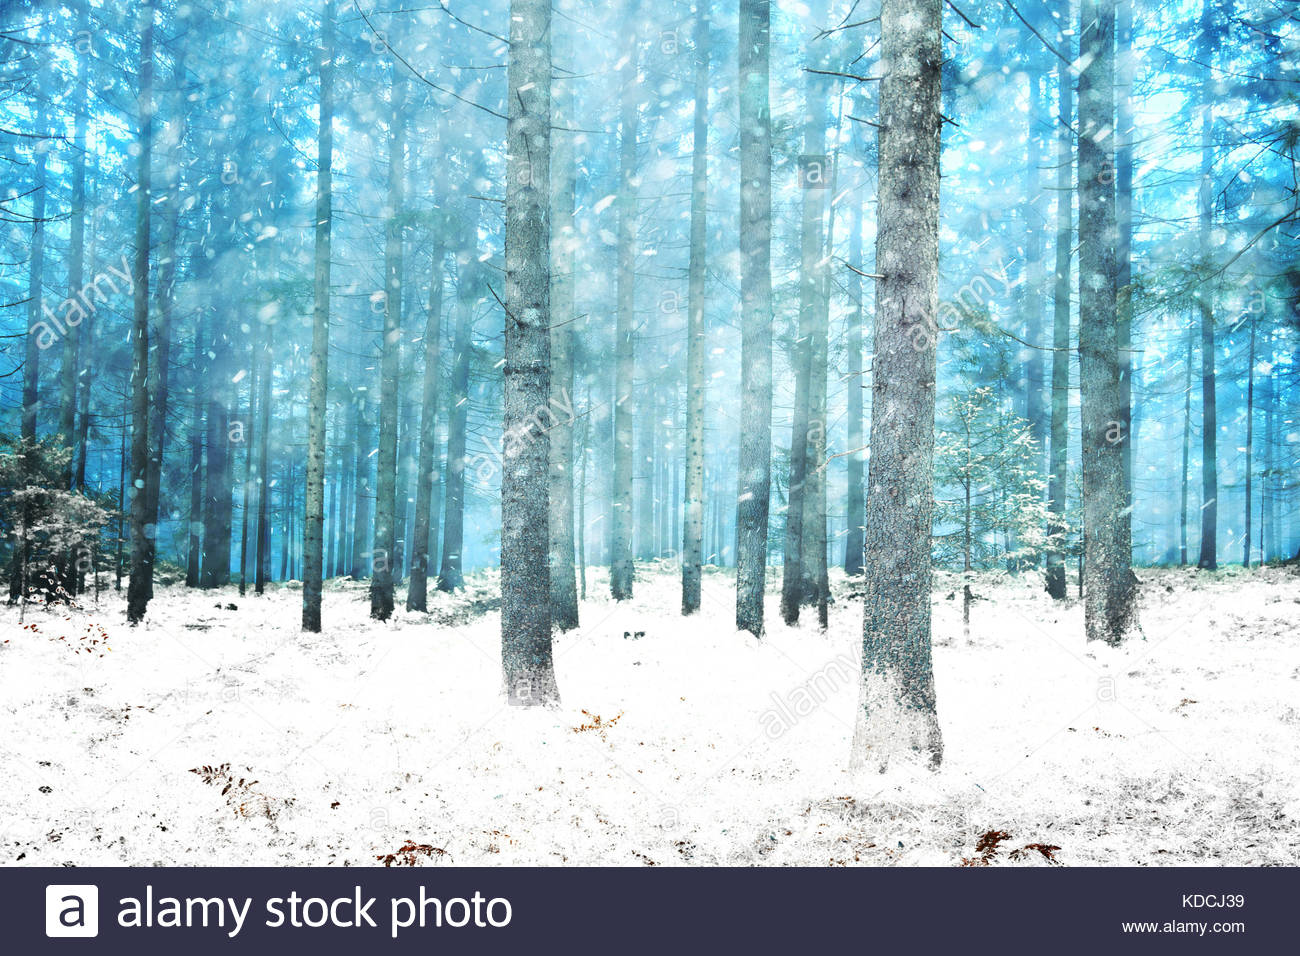 Beautiful snowy dreamy winter conifer forest. Color filter effect used. - Stock Image